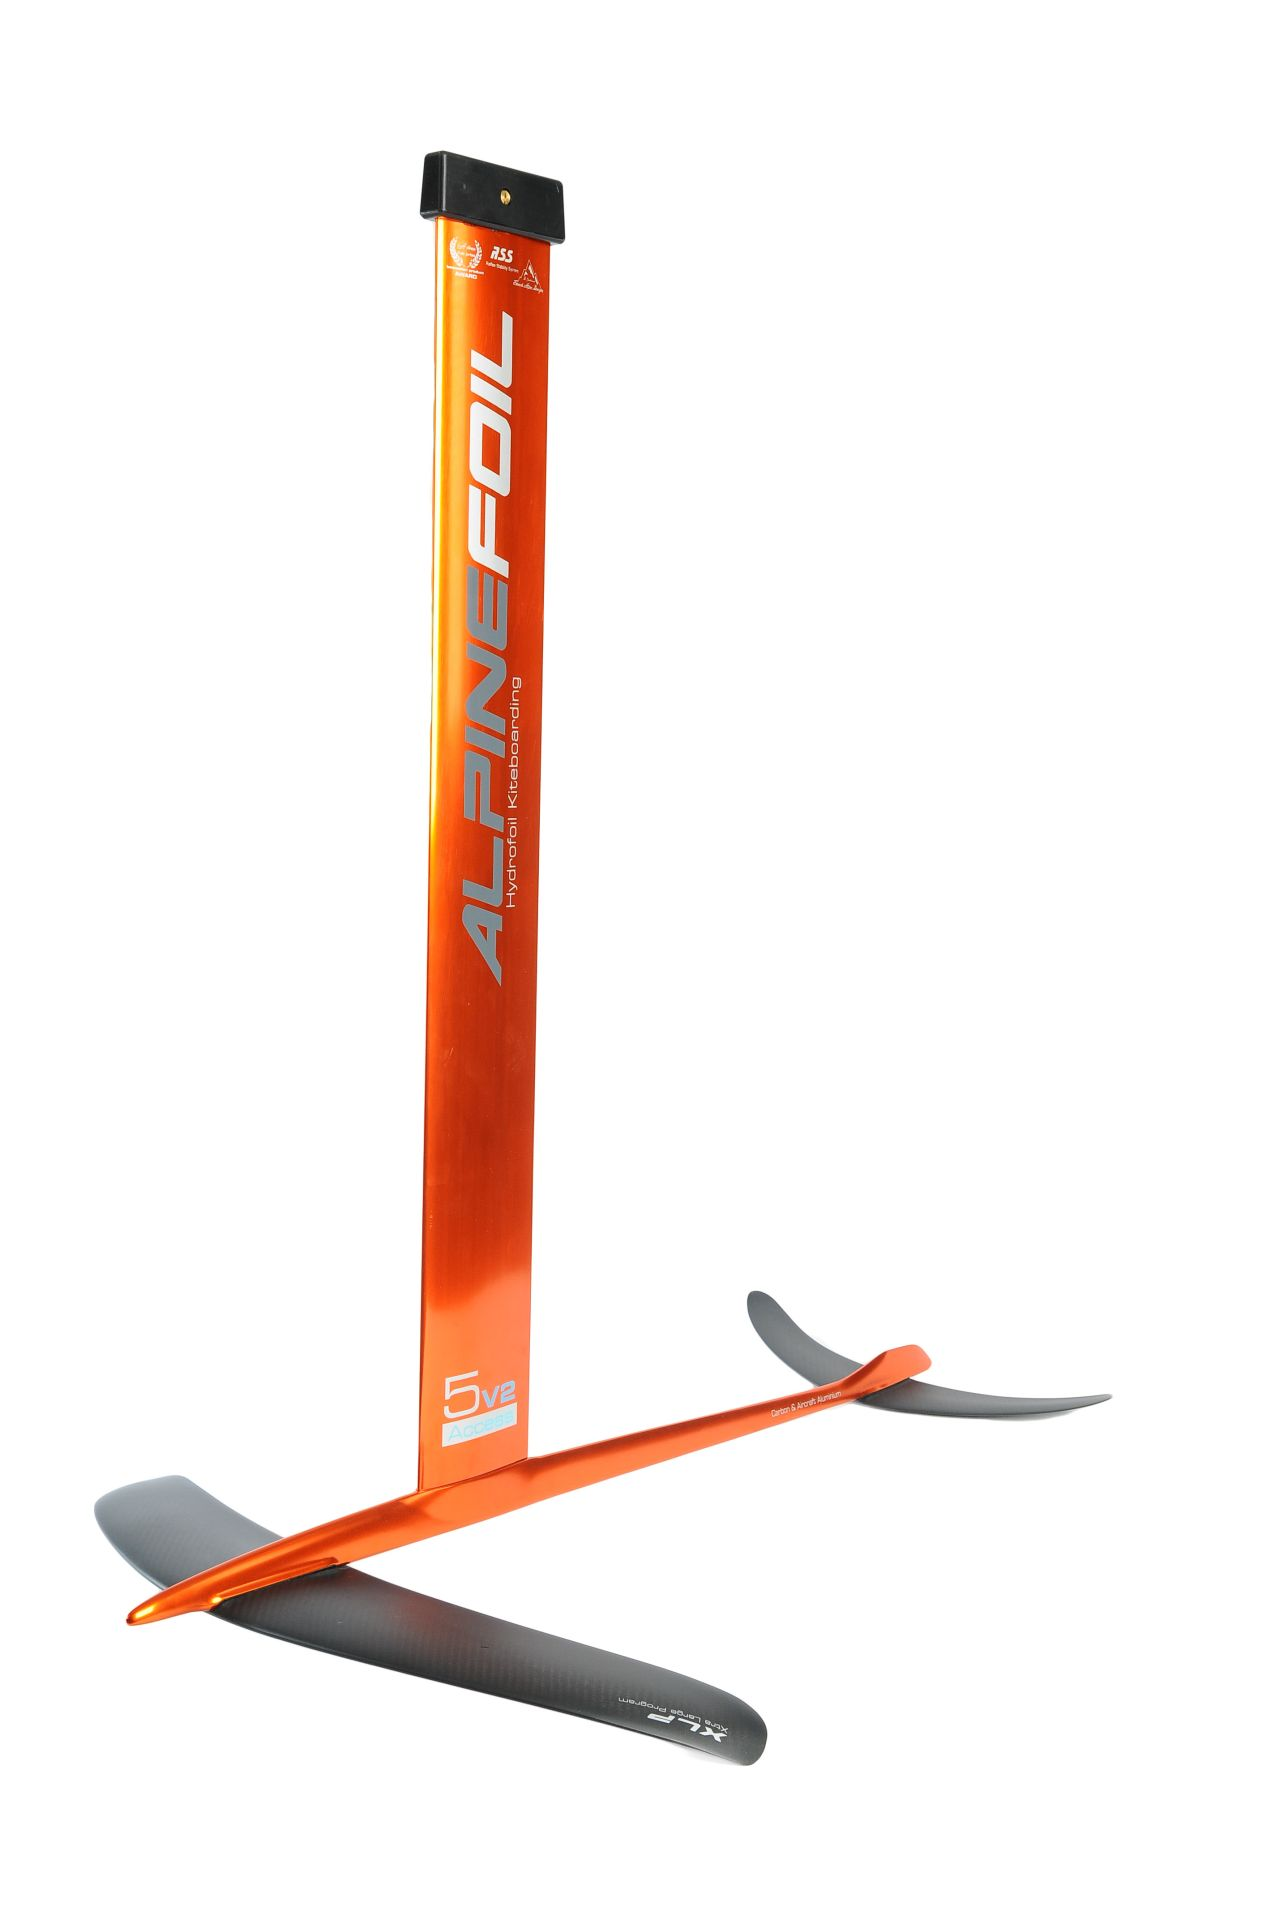 Kitefoil alpinefoil access v2 07 soft nose 2 copie 1